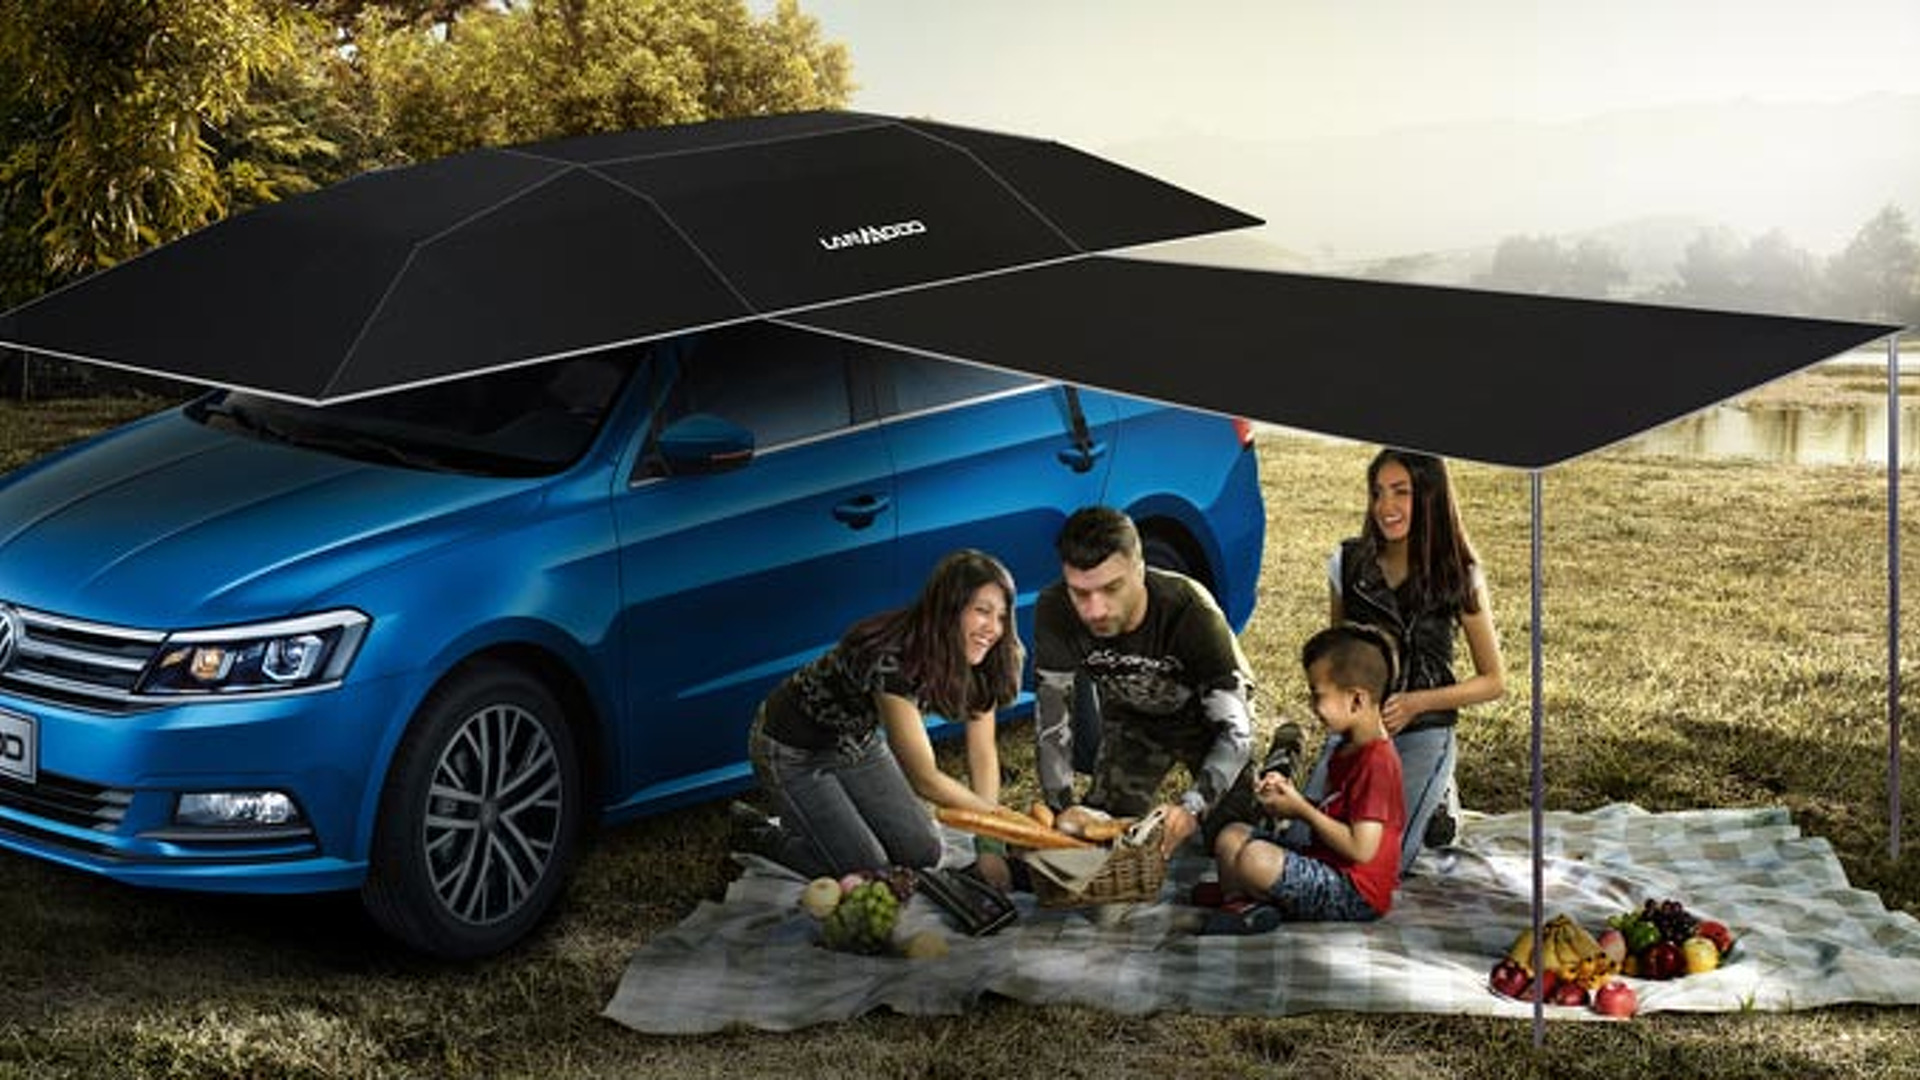 Automatic Car Umbrella Is Not As Absurd As You Think